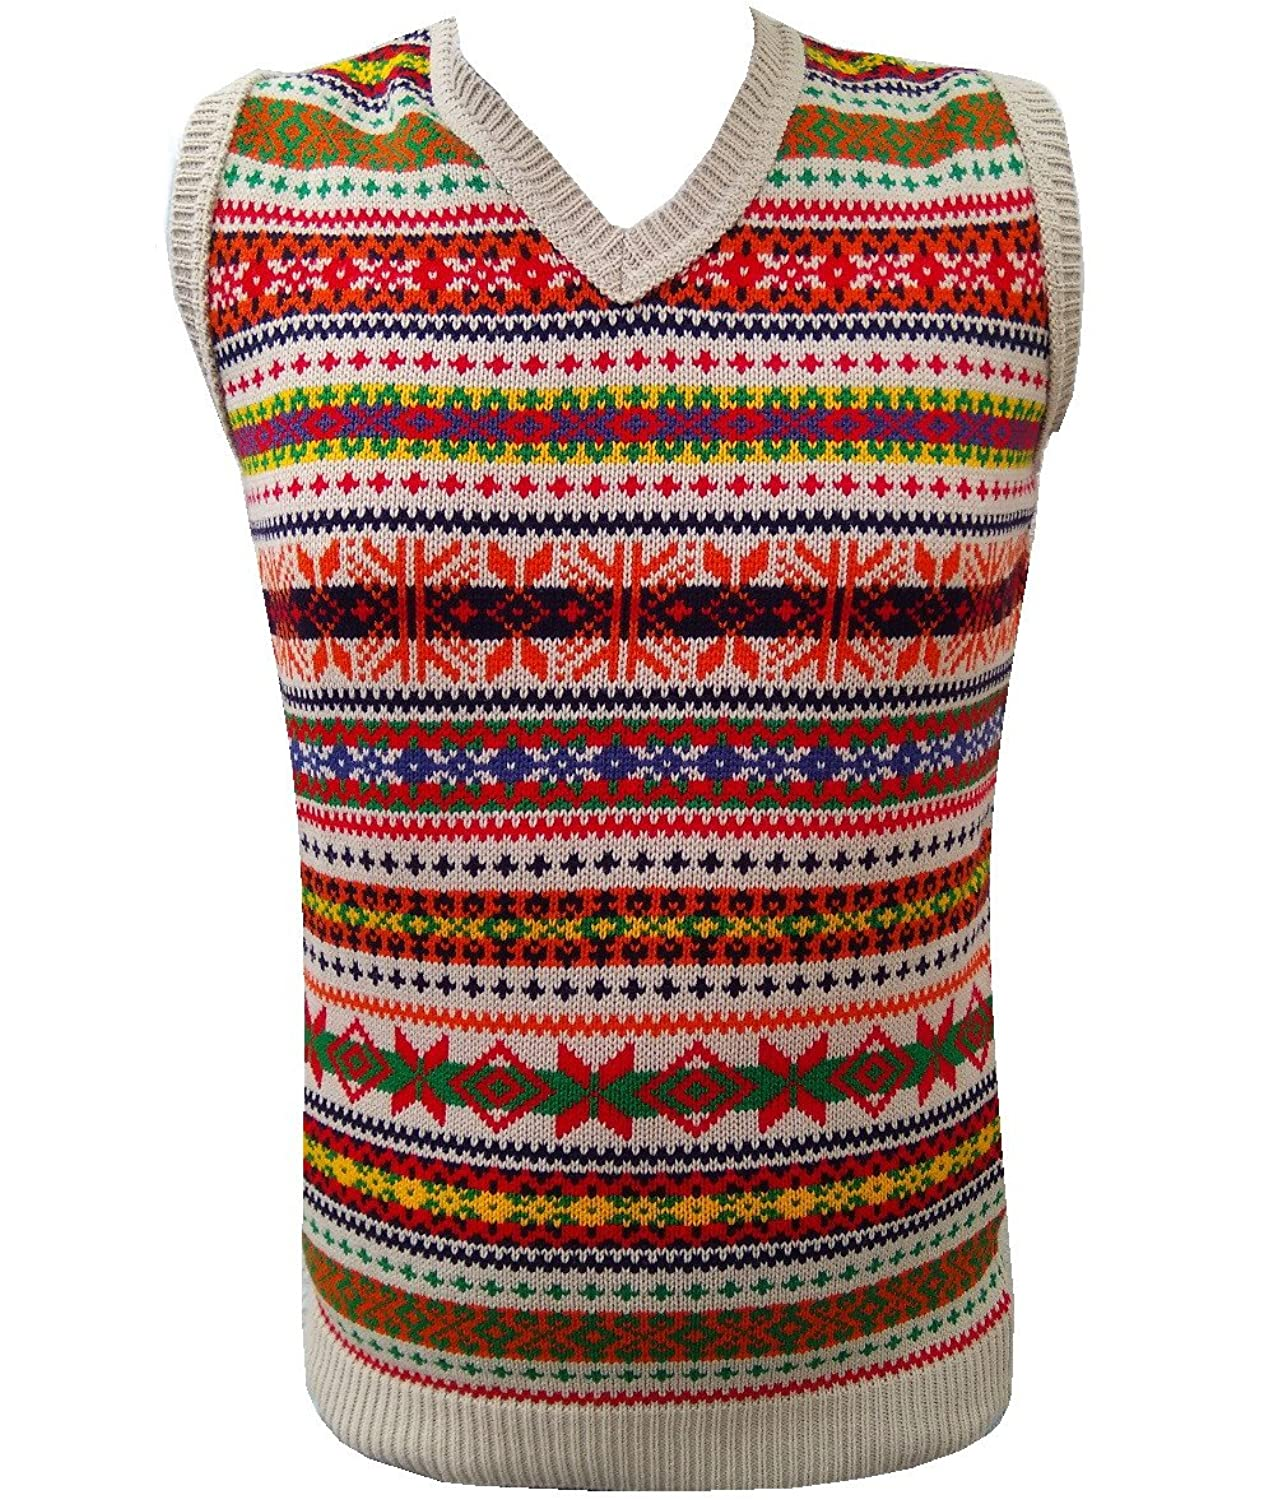 1930s Dresses, Shoes, Lingerie, Clothing UK London Knitwear Gallery Retro Vintage Knitwear Tanktop Sleeveless Golf Sweater £19.99 AT vintagedancer.com